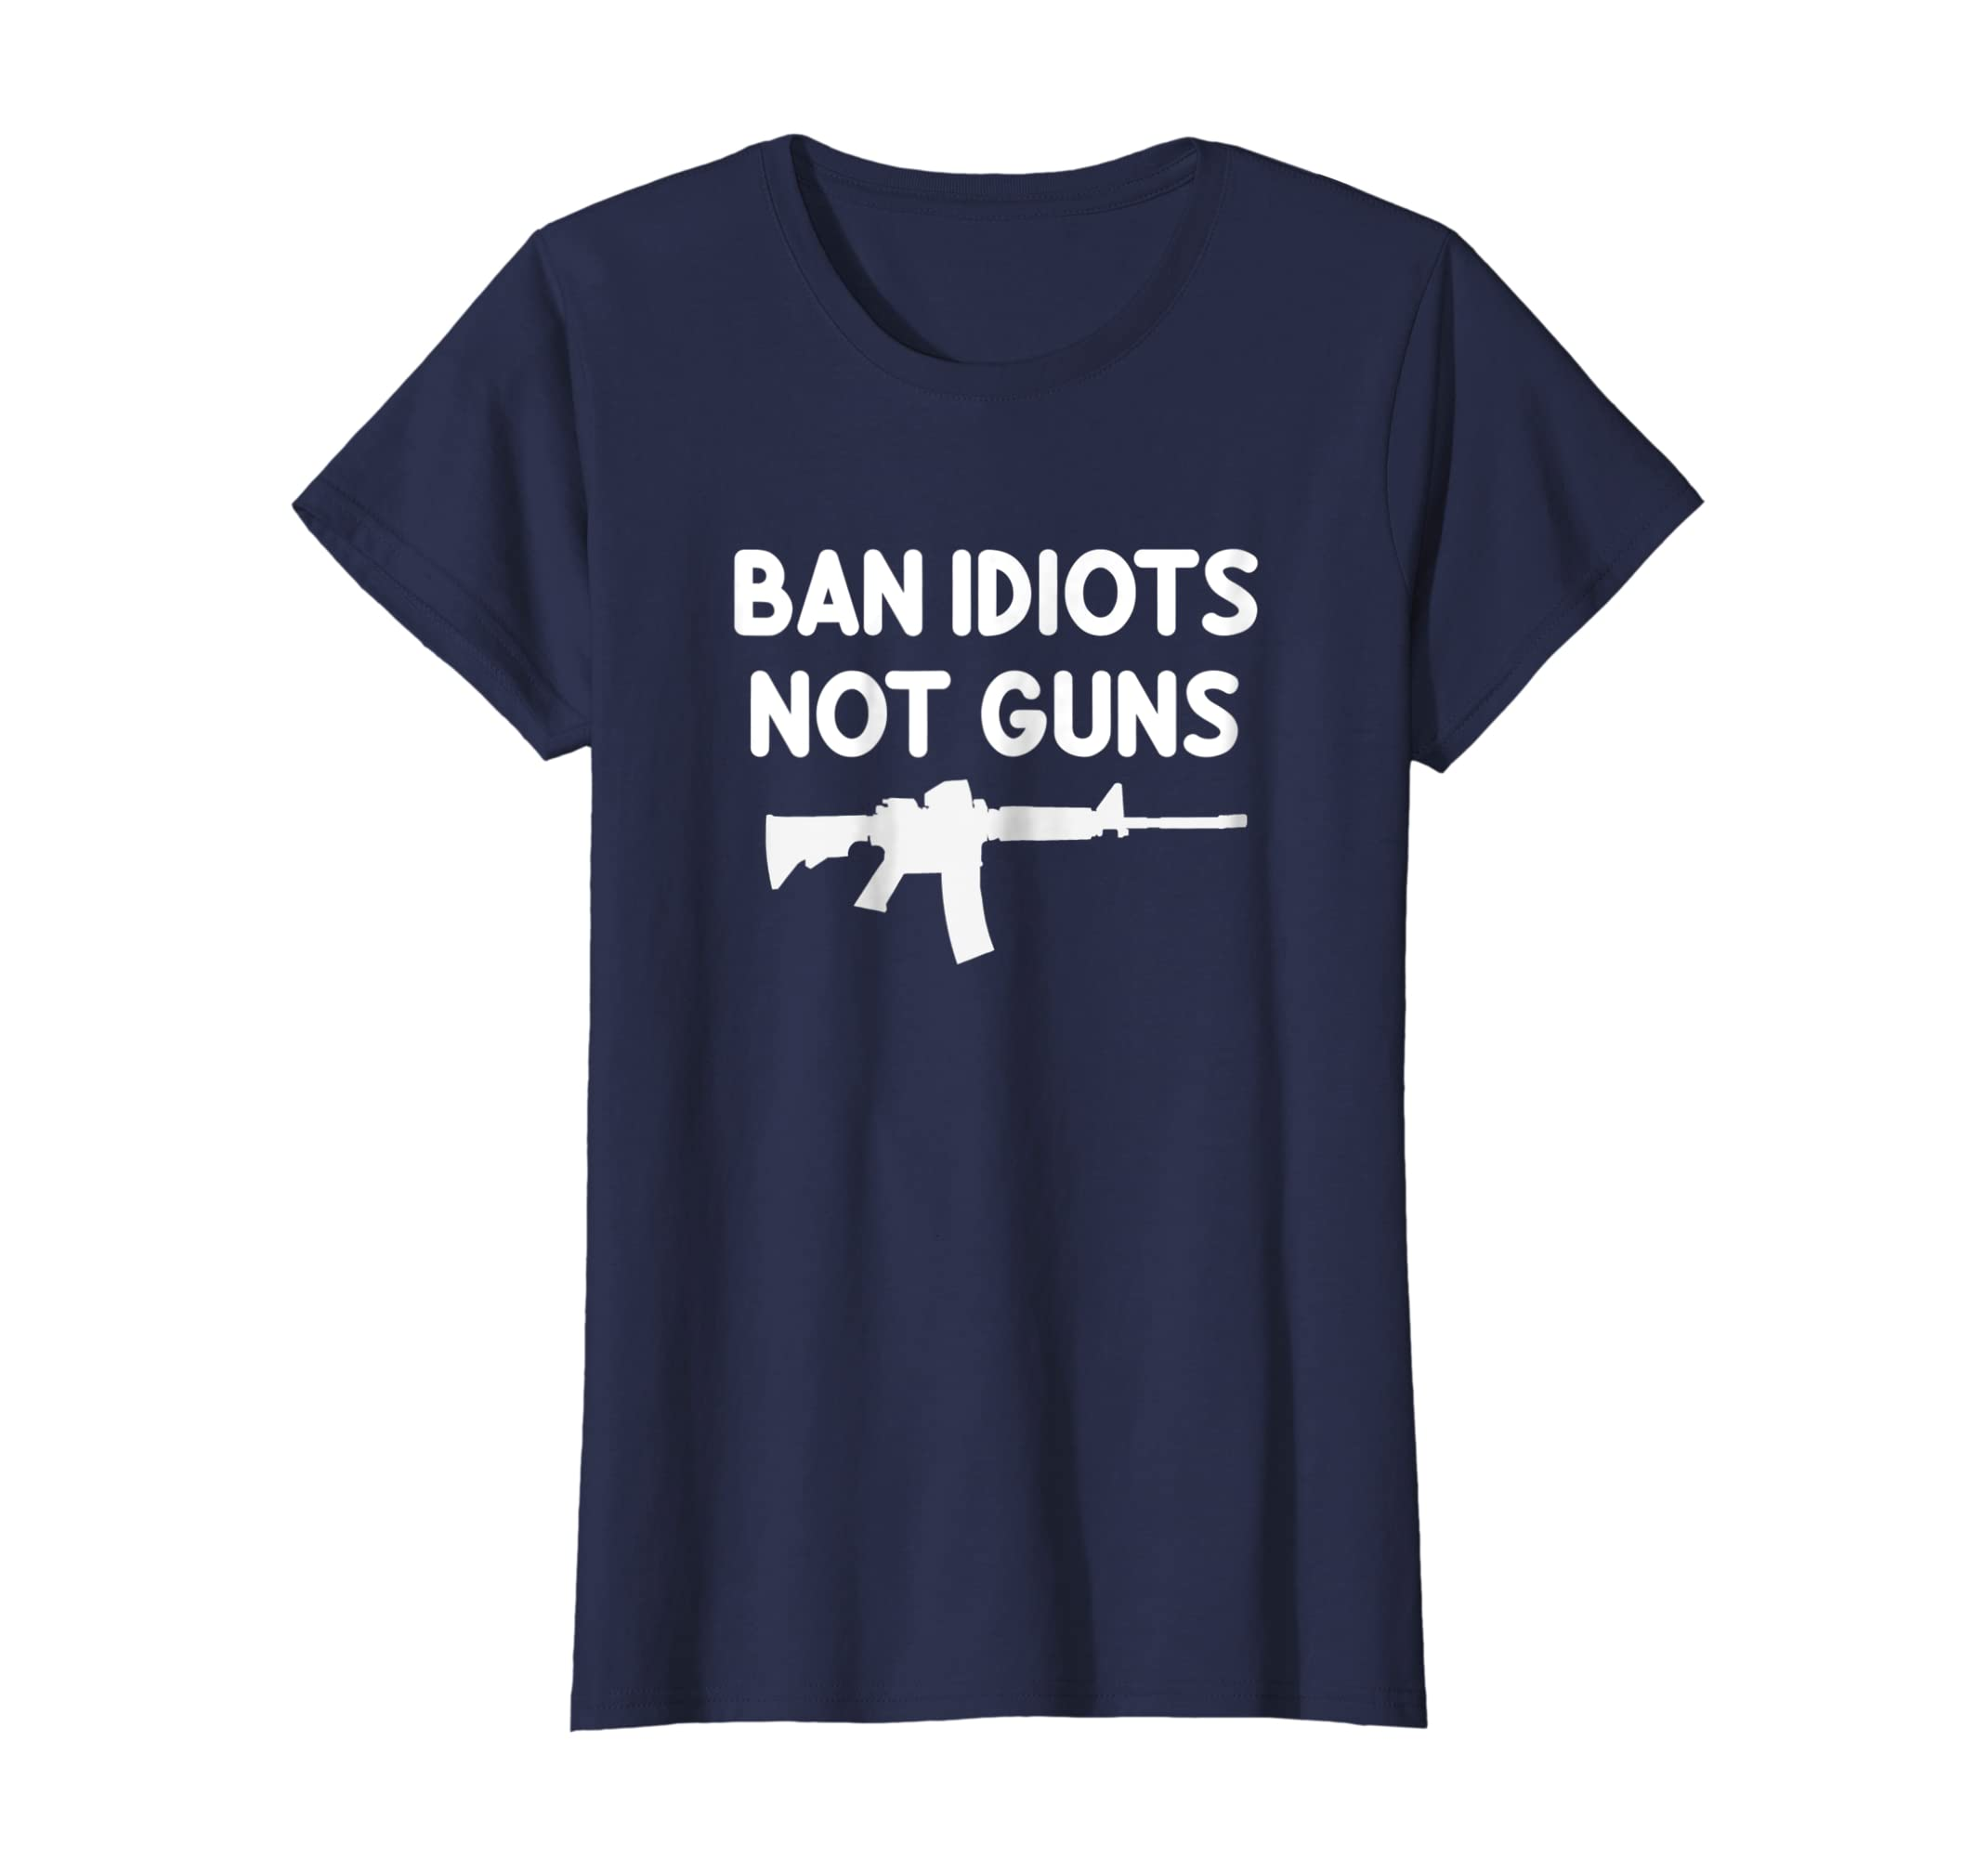 0652e1ea Amazon.com: Funny Gun Supporter T-Shirt. Ban Idiots Not Guns Tee: Clothing